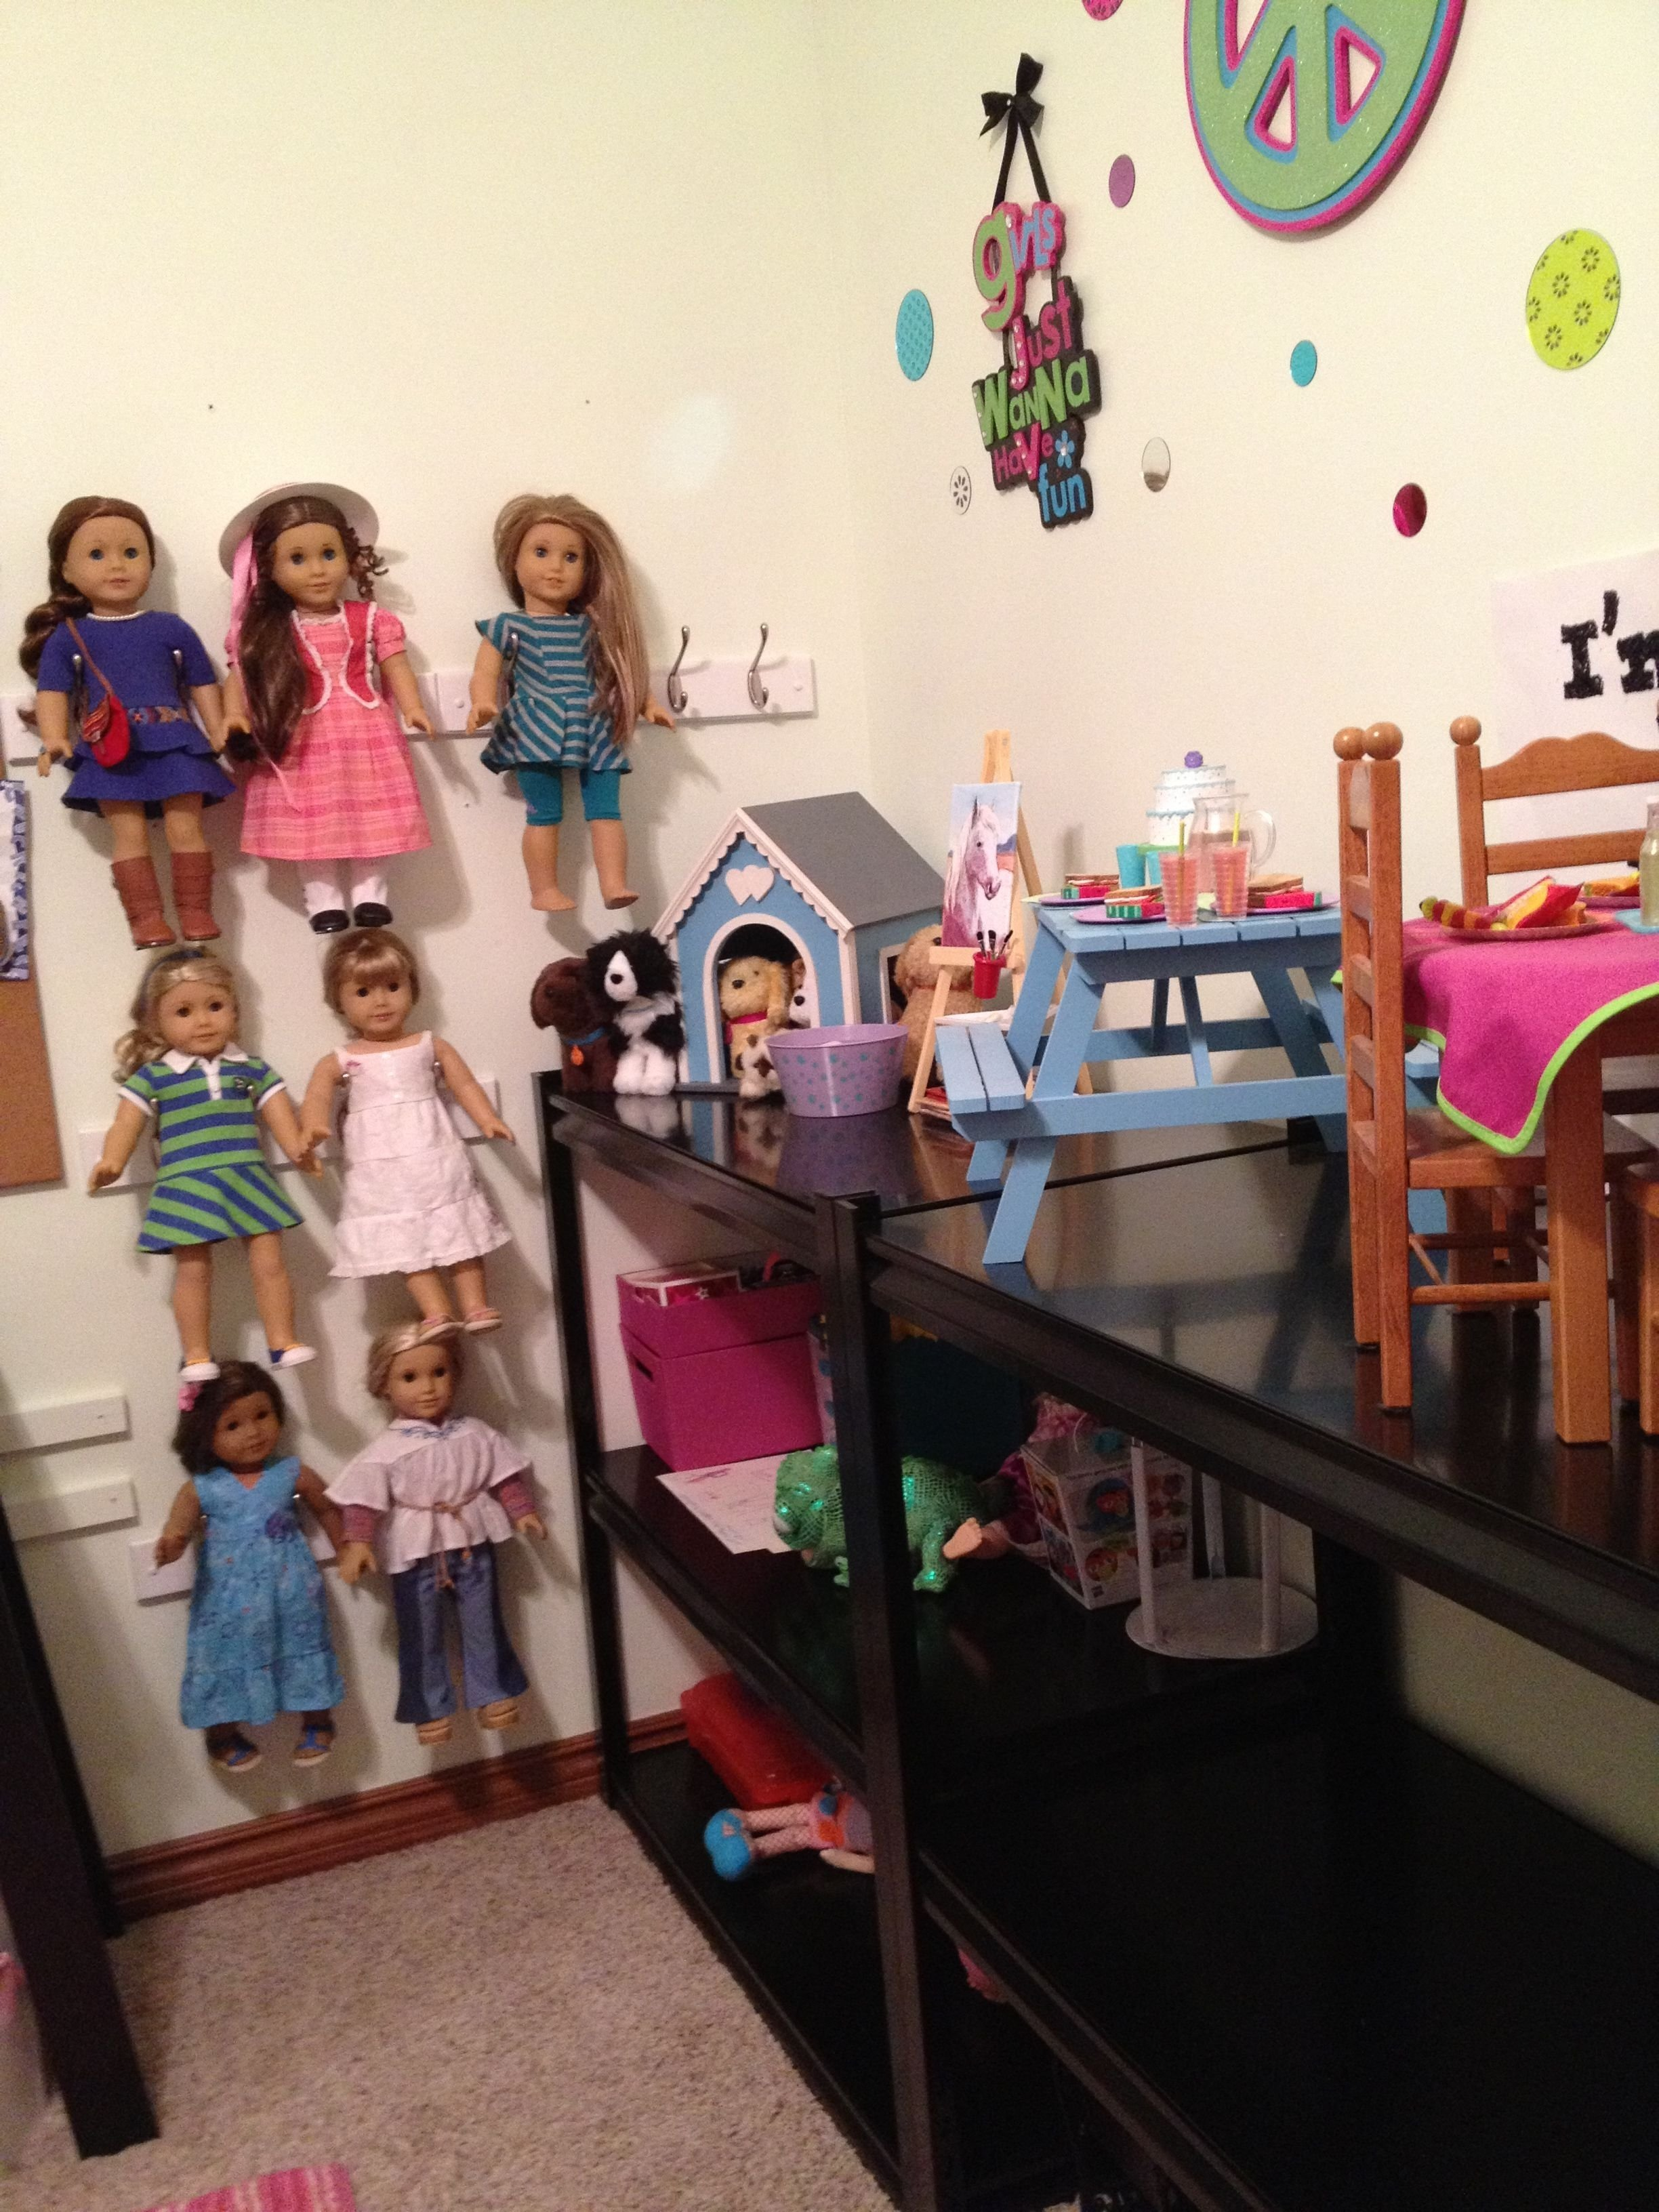 10 Spectacular American Girl Doll Storage Ideas american girl clark doll with book doll storage girl dolls and 2020